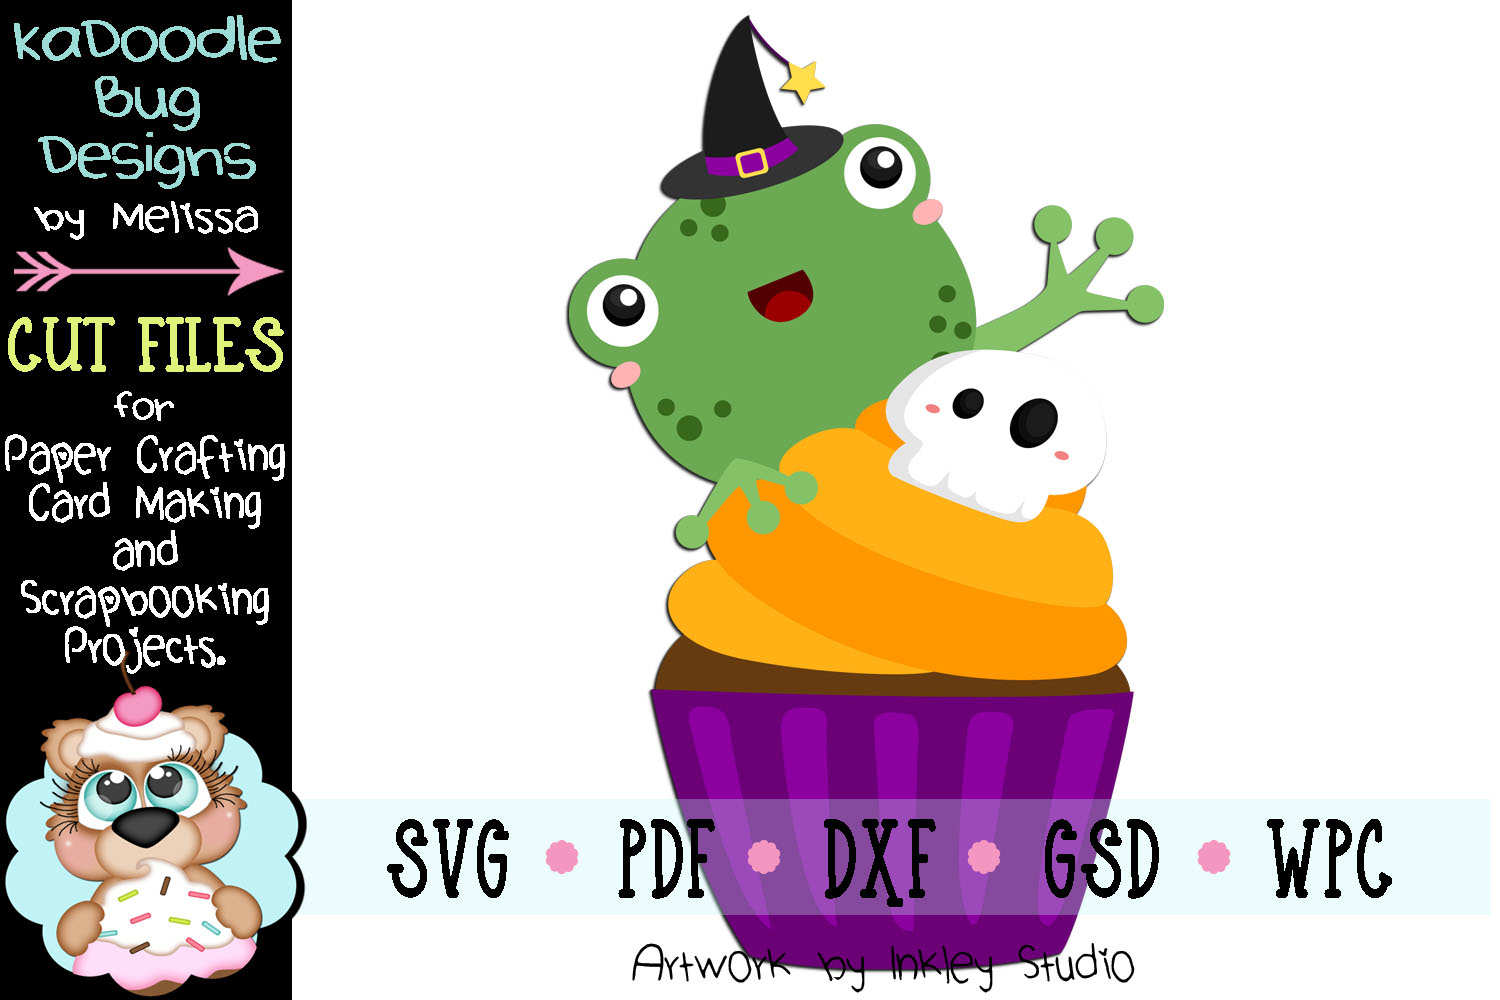 Halloween Cupcake Frog Cut File - SVG PDF DXF GSD WPC example image 1